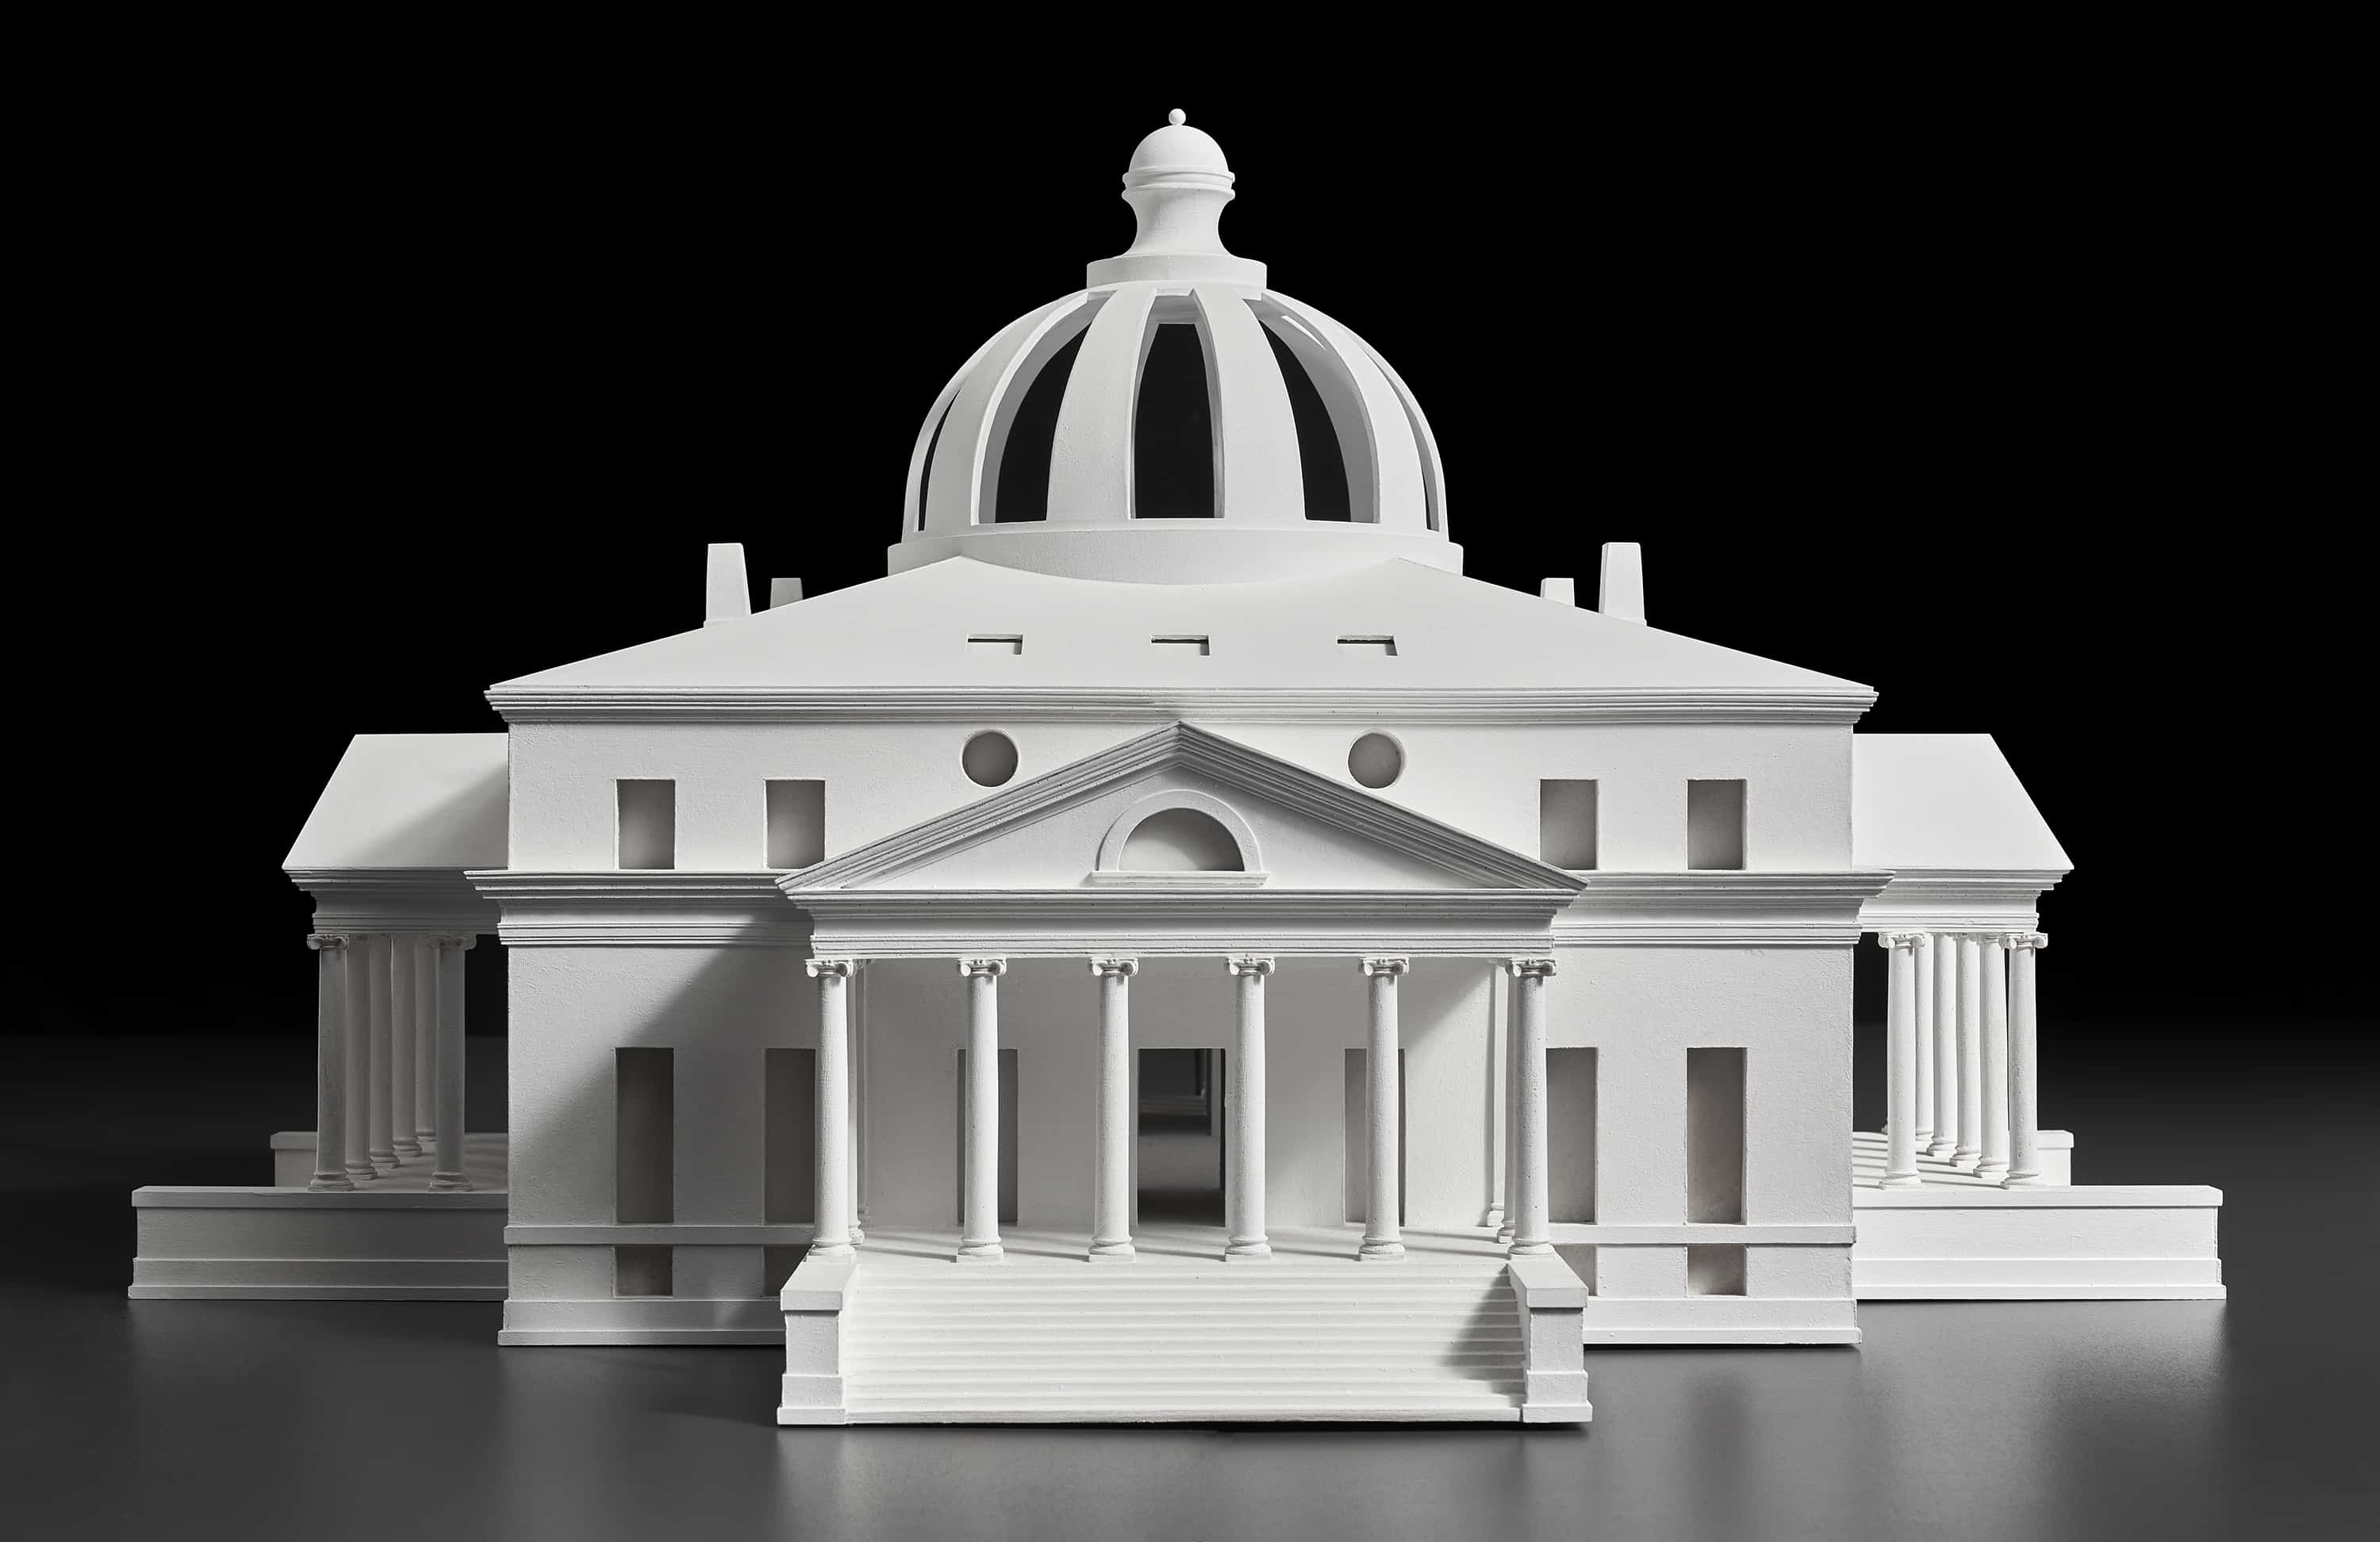 Architect's Newspaper: Thomas Jefferson, Architect at the Chrysler